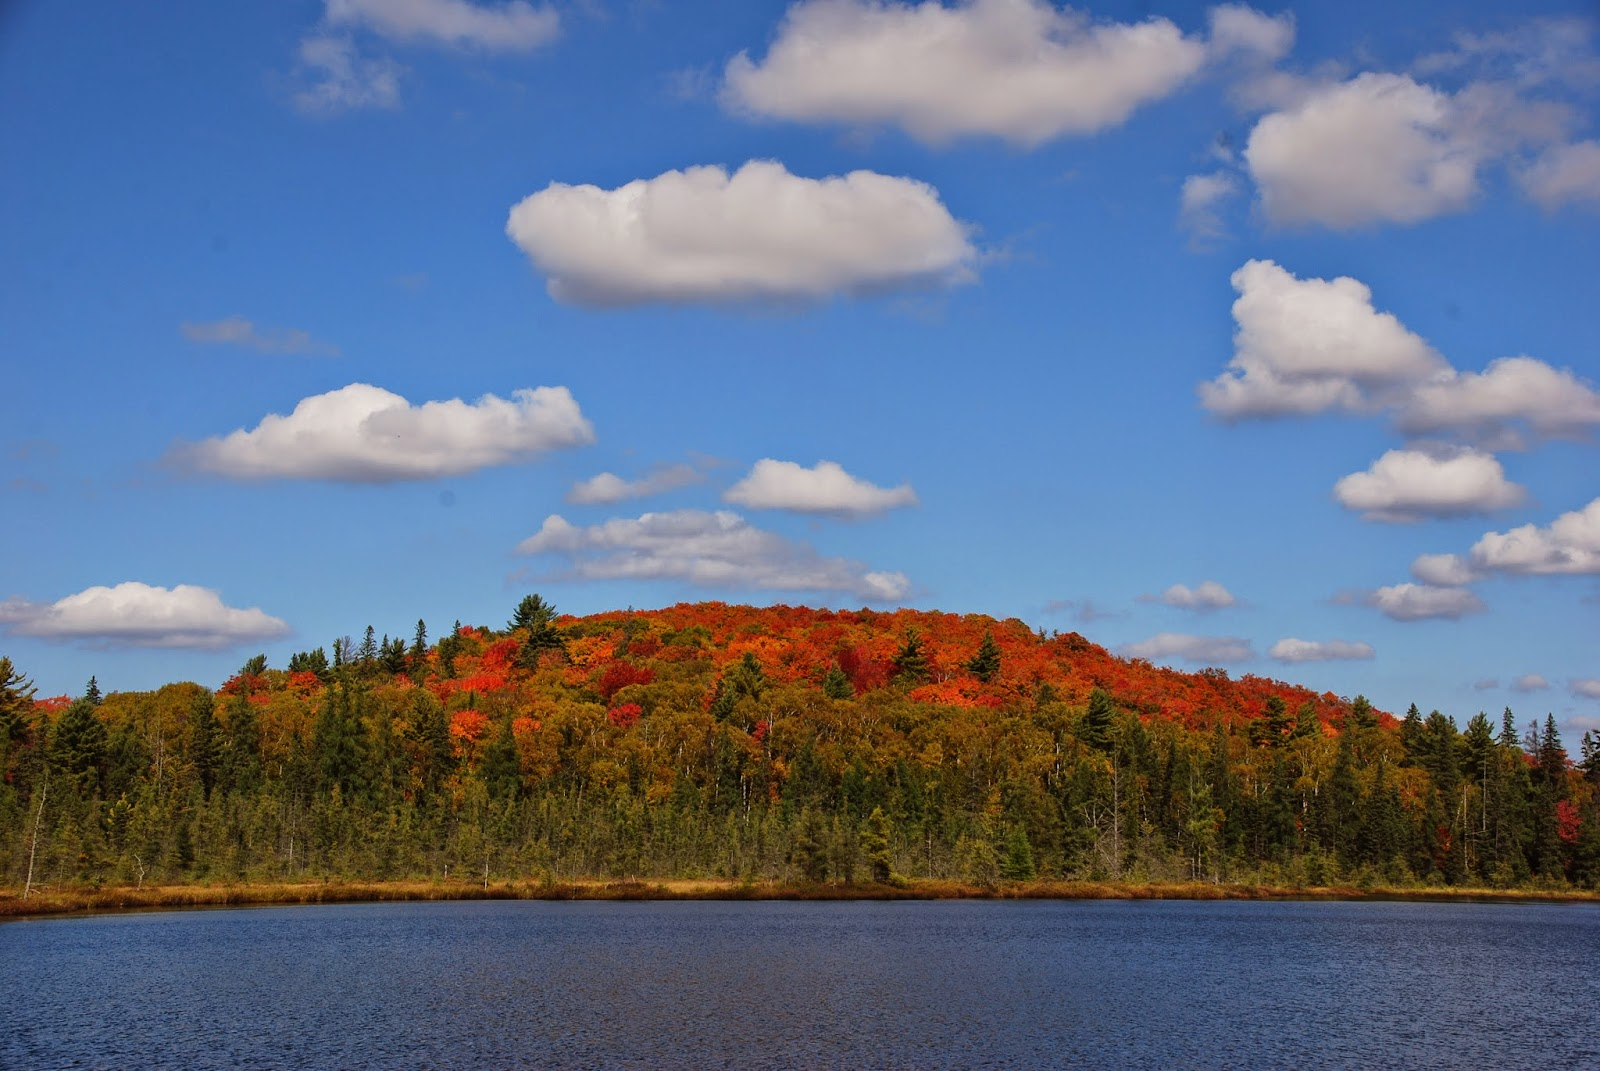 Mizzy Lake with Fall colours on the trees